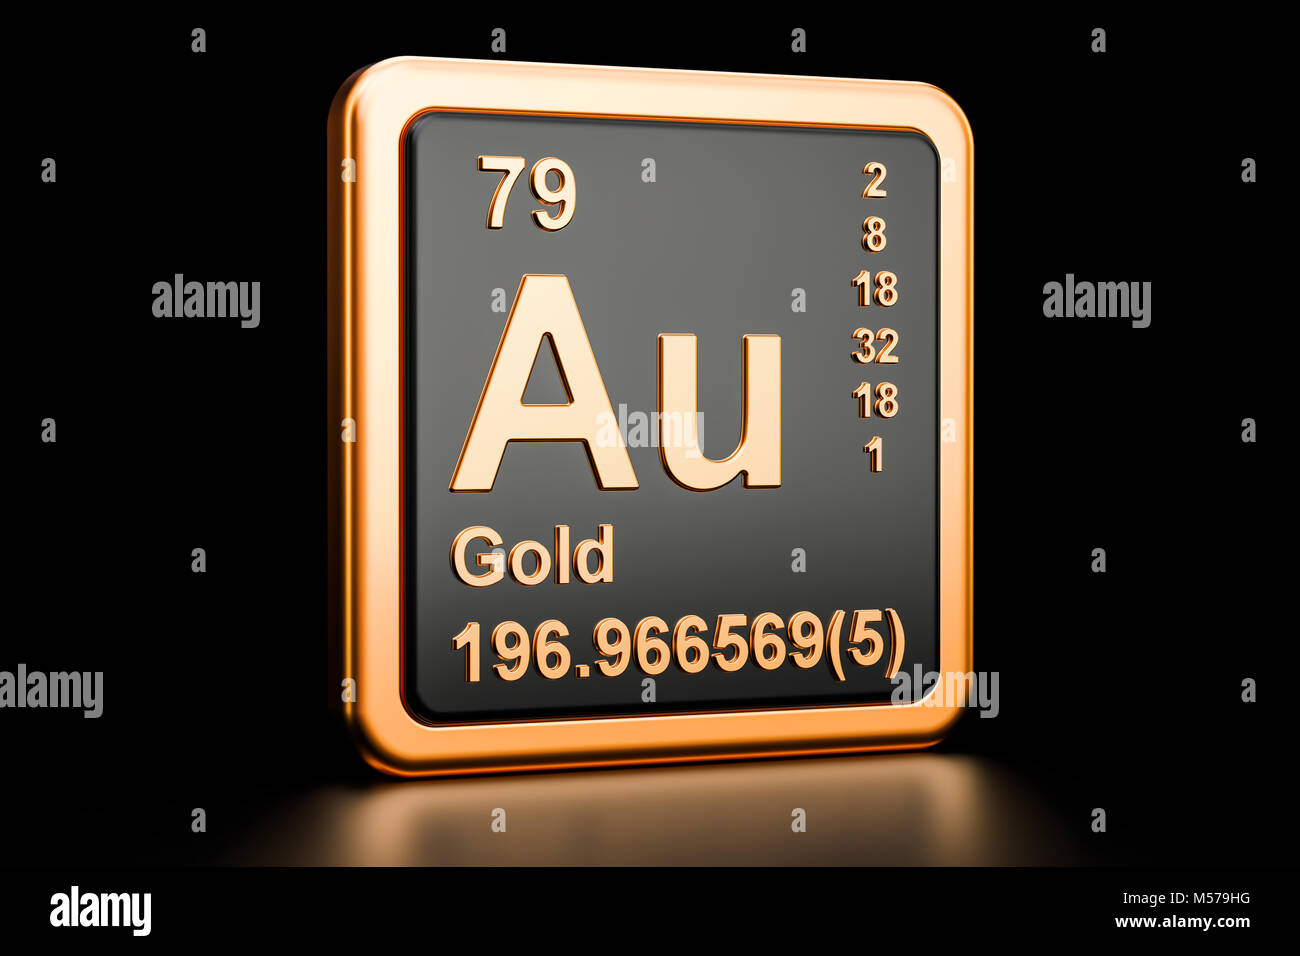 Symbol au chemical element gold stock photos symbol au chemical gold aurum au chemical element sign 3d rendering isolated on black background stock biocorpaavc